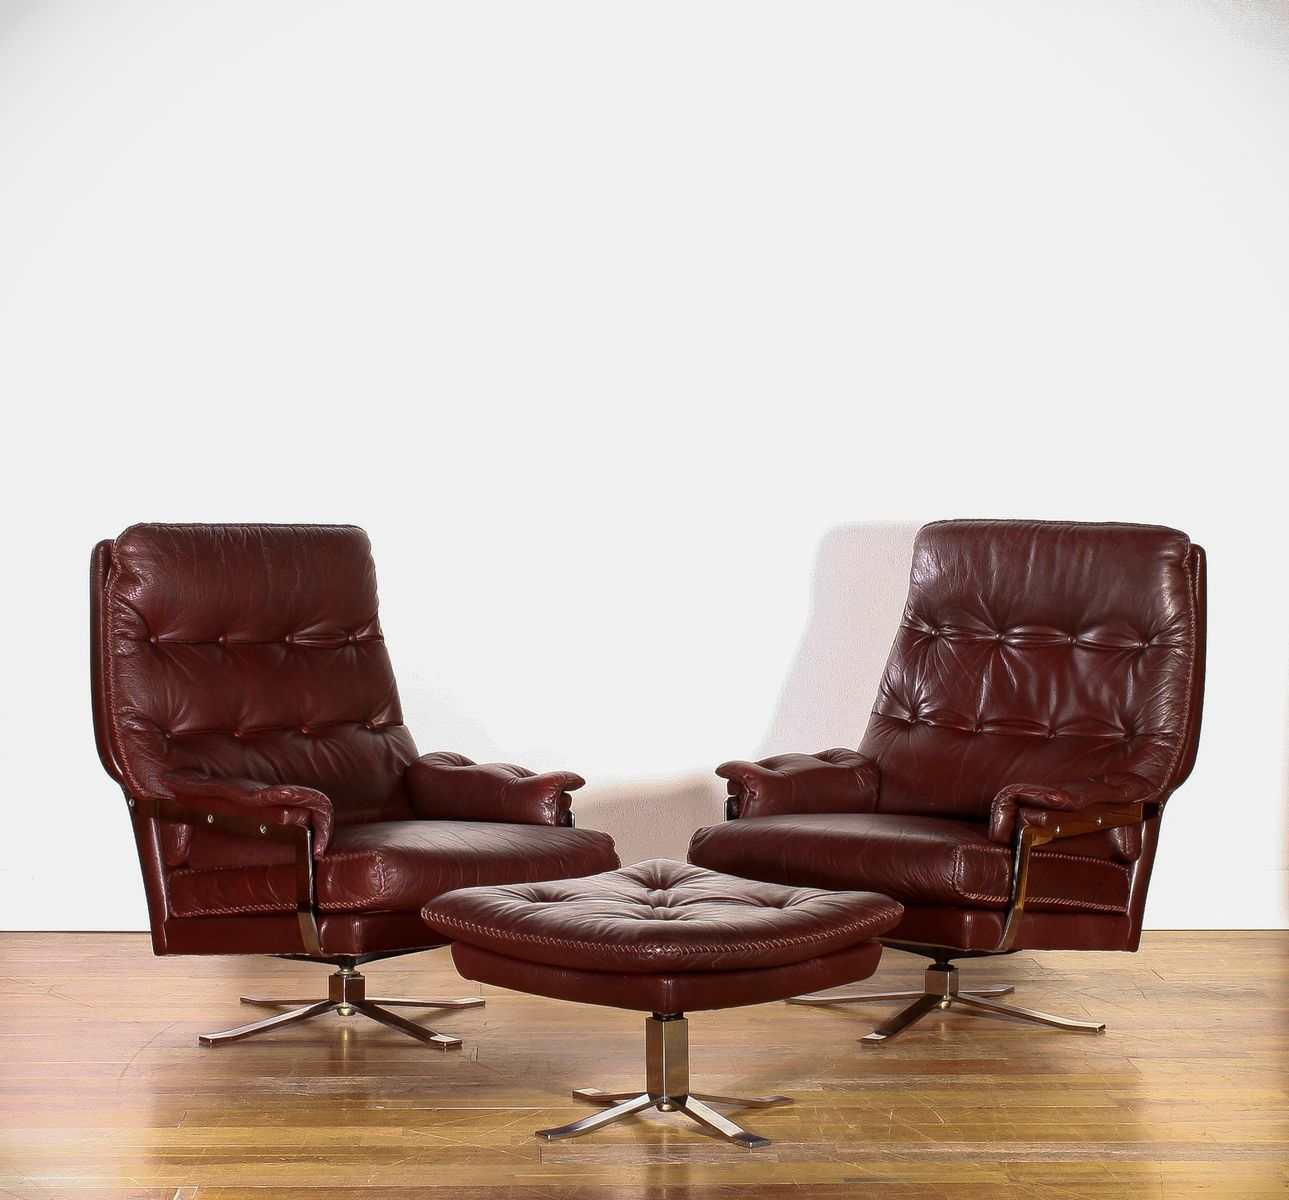 Leather Lounge Chairs and Ottoman by Arne Norell for Vatne Møbler 1960s Set